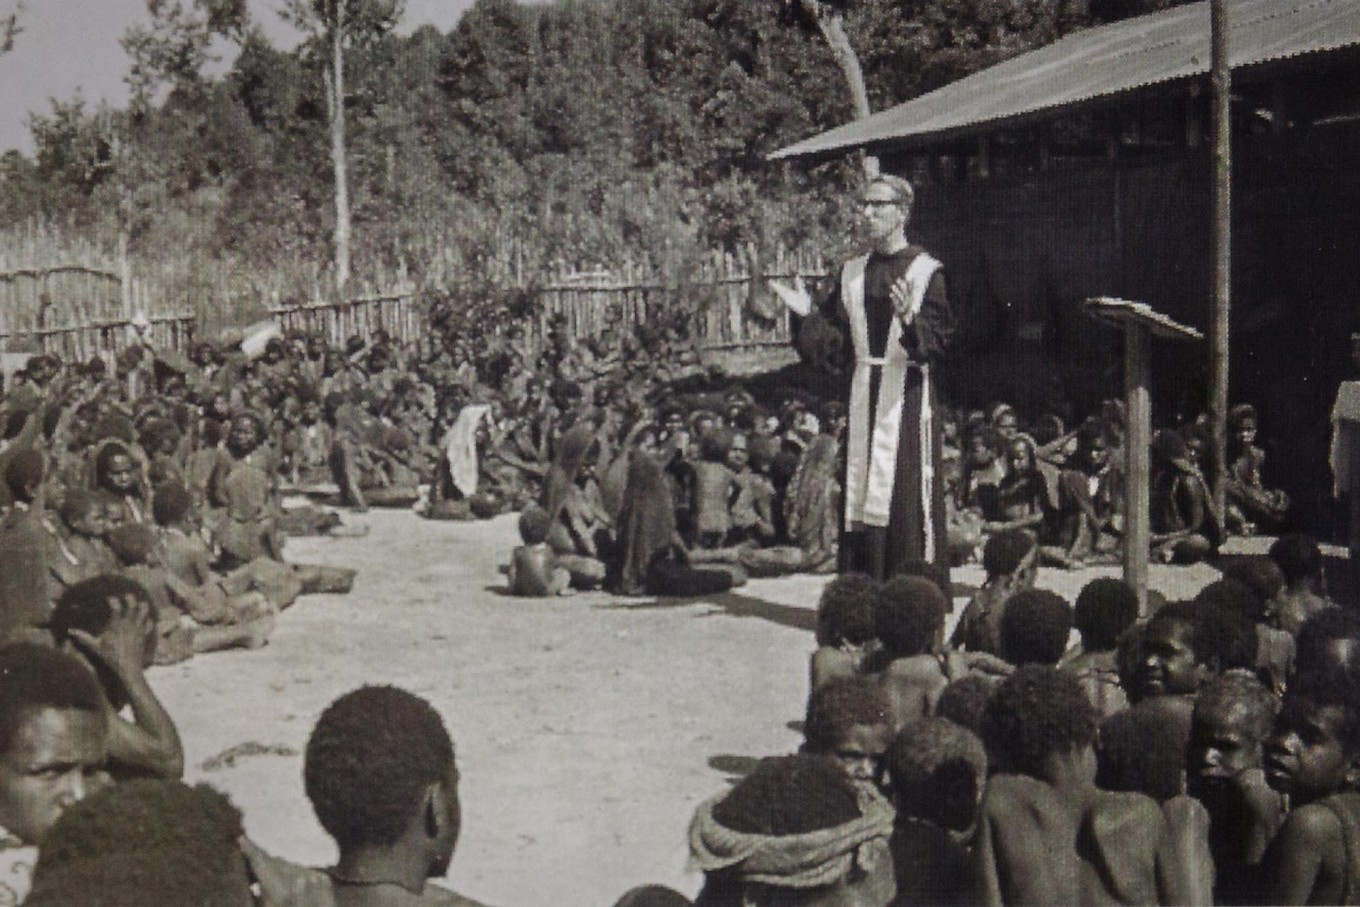 Old times: Father Frans Lieshout OFM delivers a sermon in Bilogai, now located in Intan Jaya regency. The church's early entry into Papua was not smooth. A missionary school was burned by locals in Baliem Valley in 1961. Courtesy of  Brother Jan Sjerp OFM, Father Lambertus H Hagendoorn OFM and Father Frans Lieshout OFM